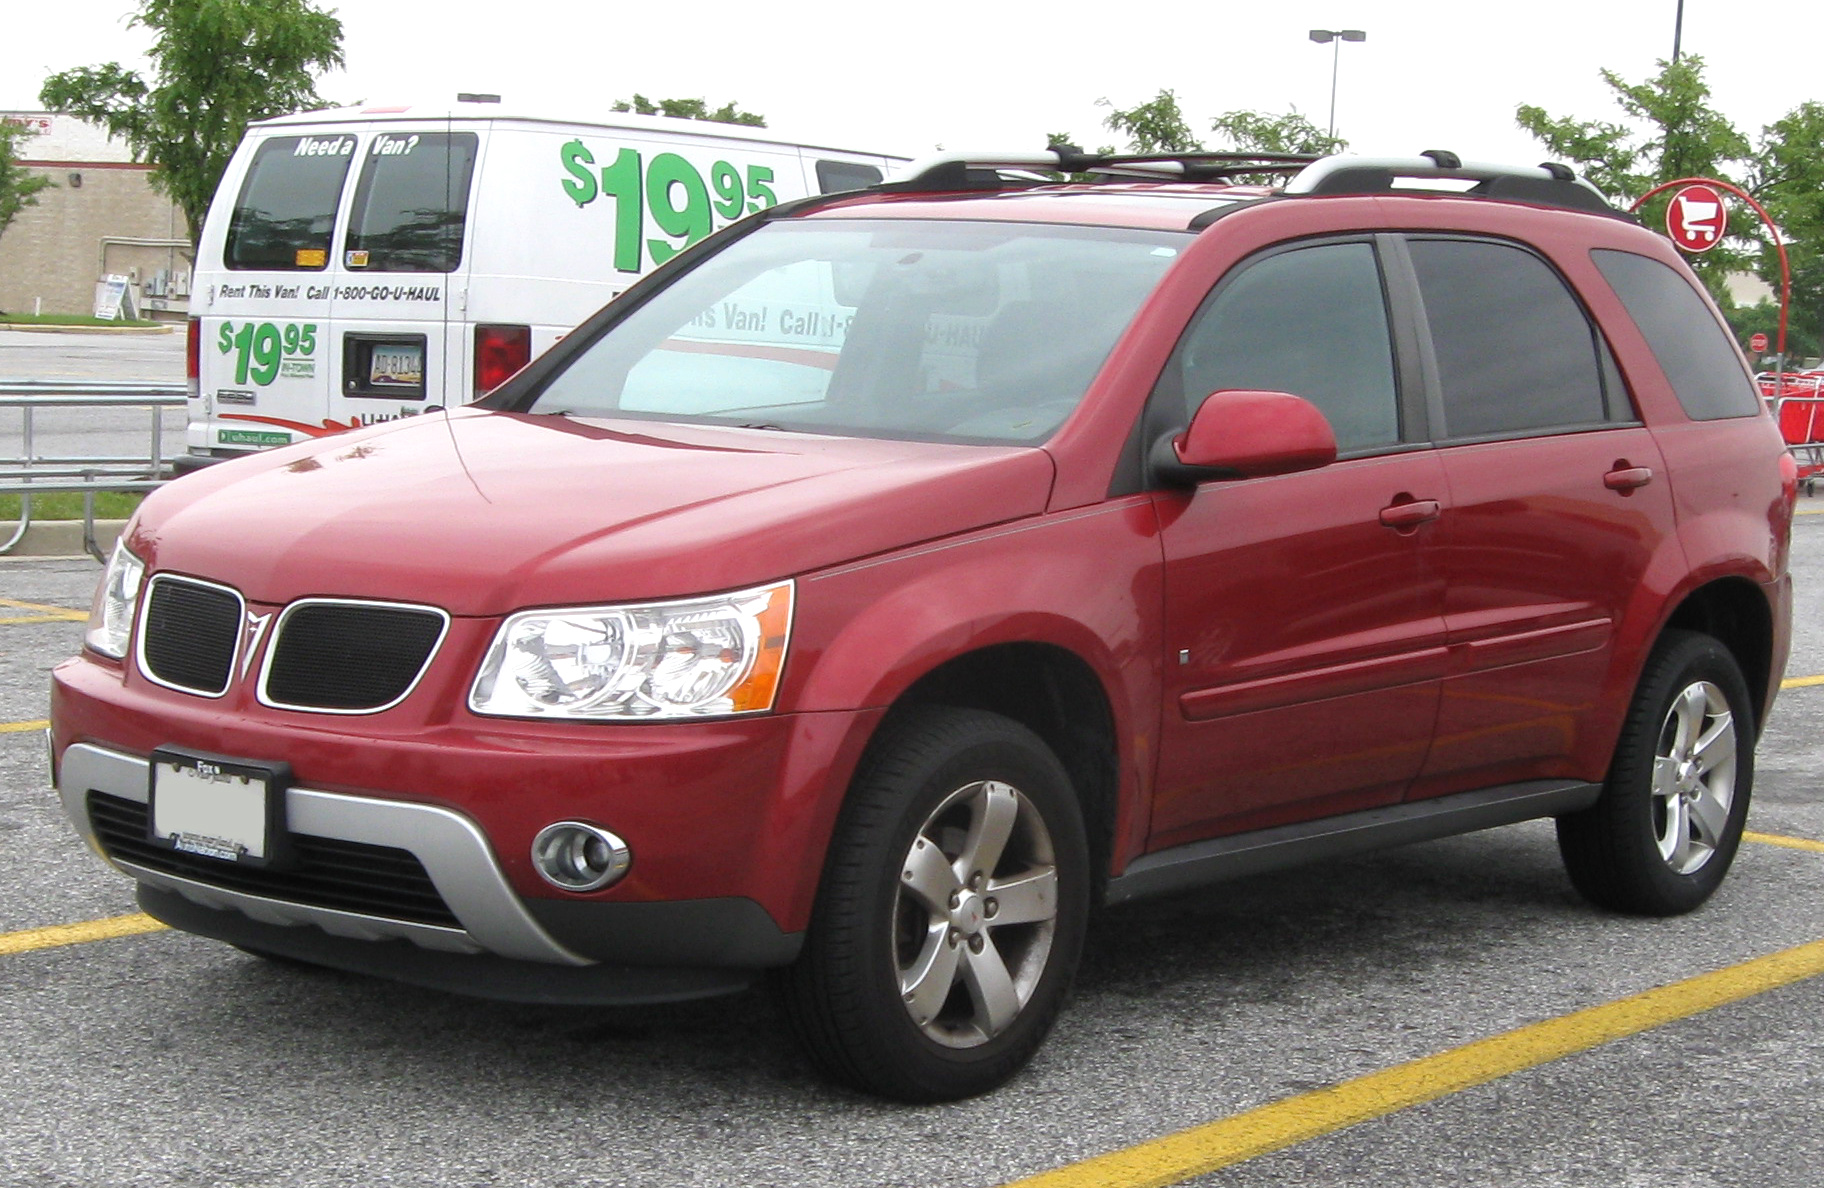 Pontiac Torrent #19